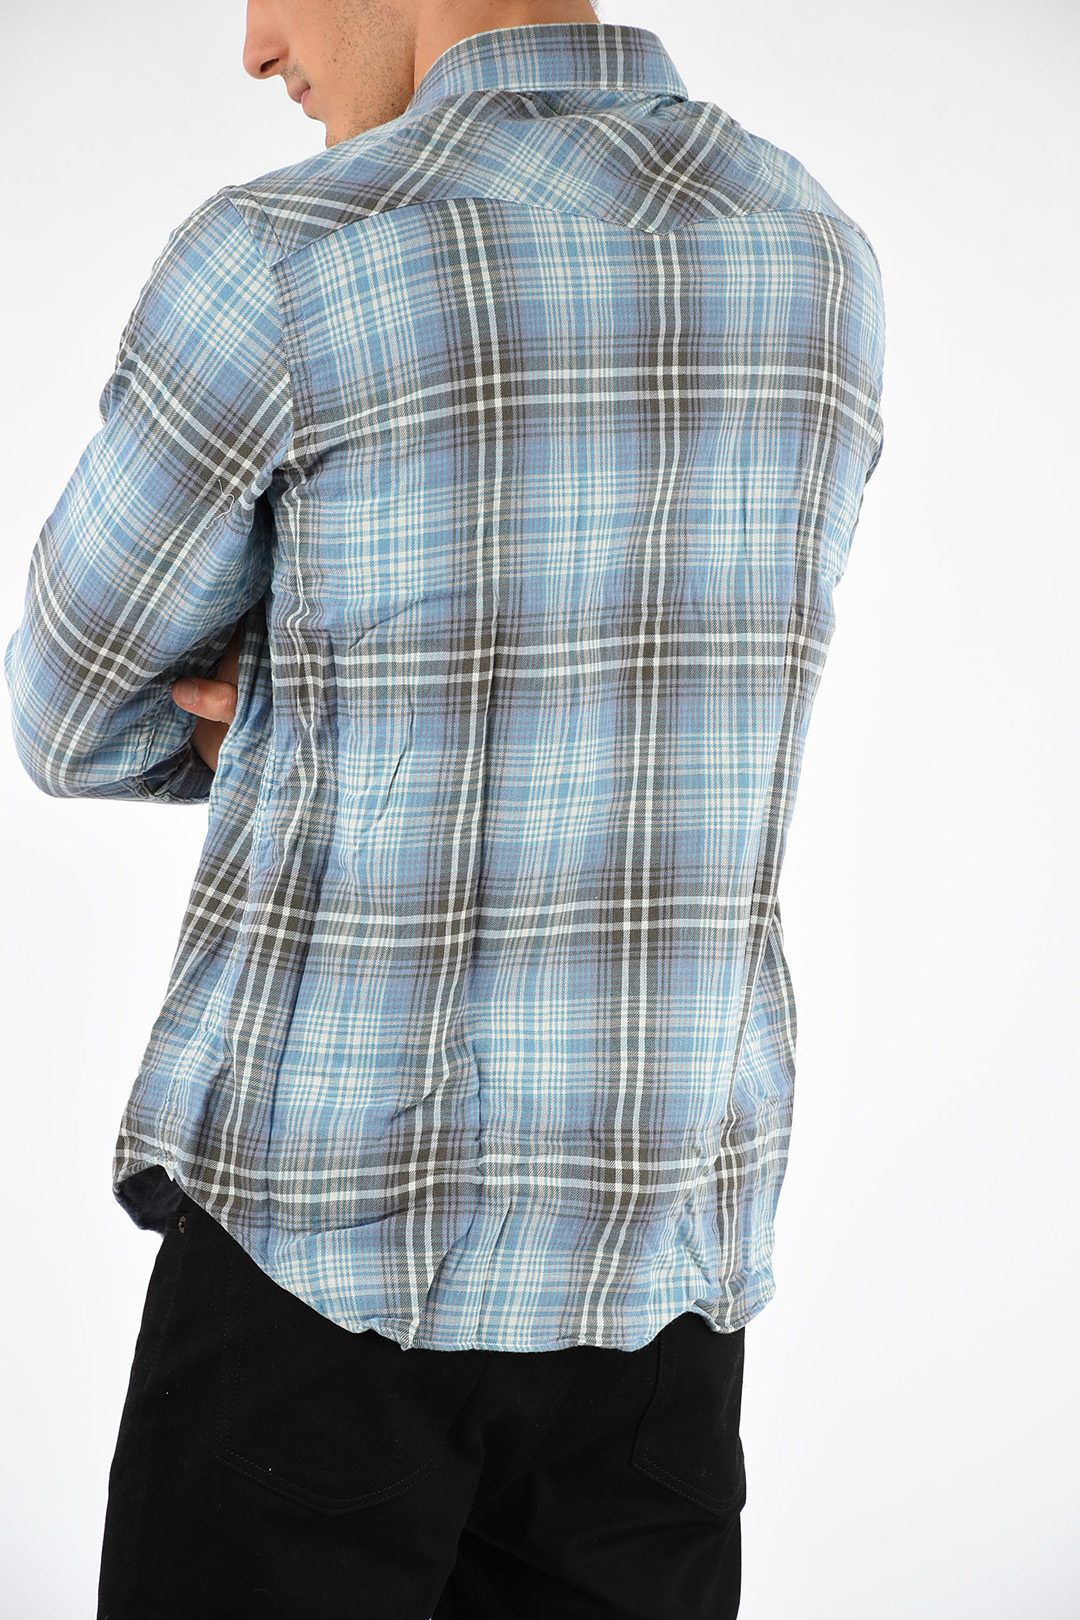 Checked Checked Western Classic Classic Western Classic Shirt Shirt Western Checked Shirt 7YfvgIby6